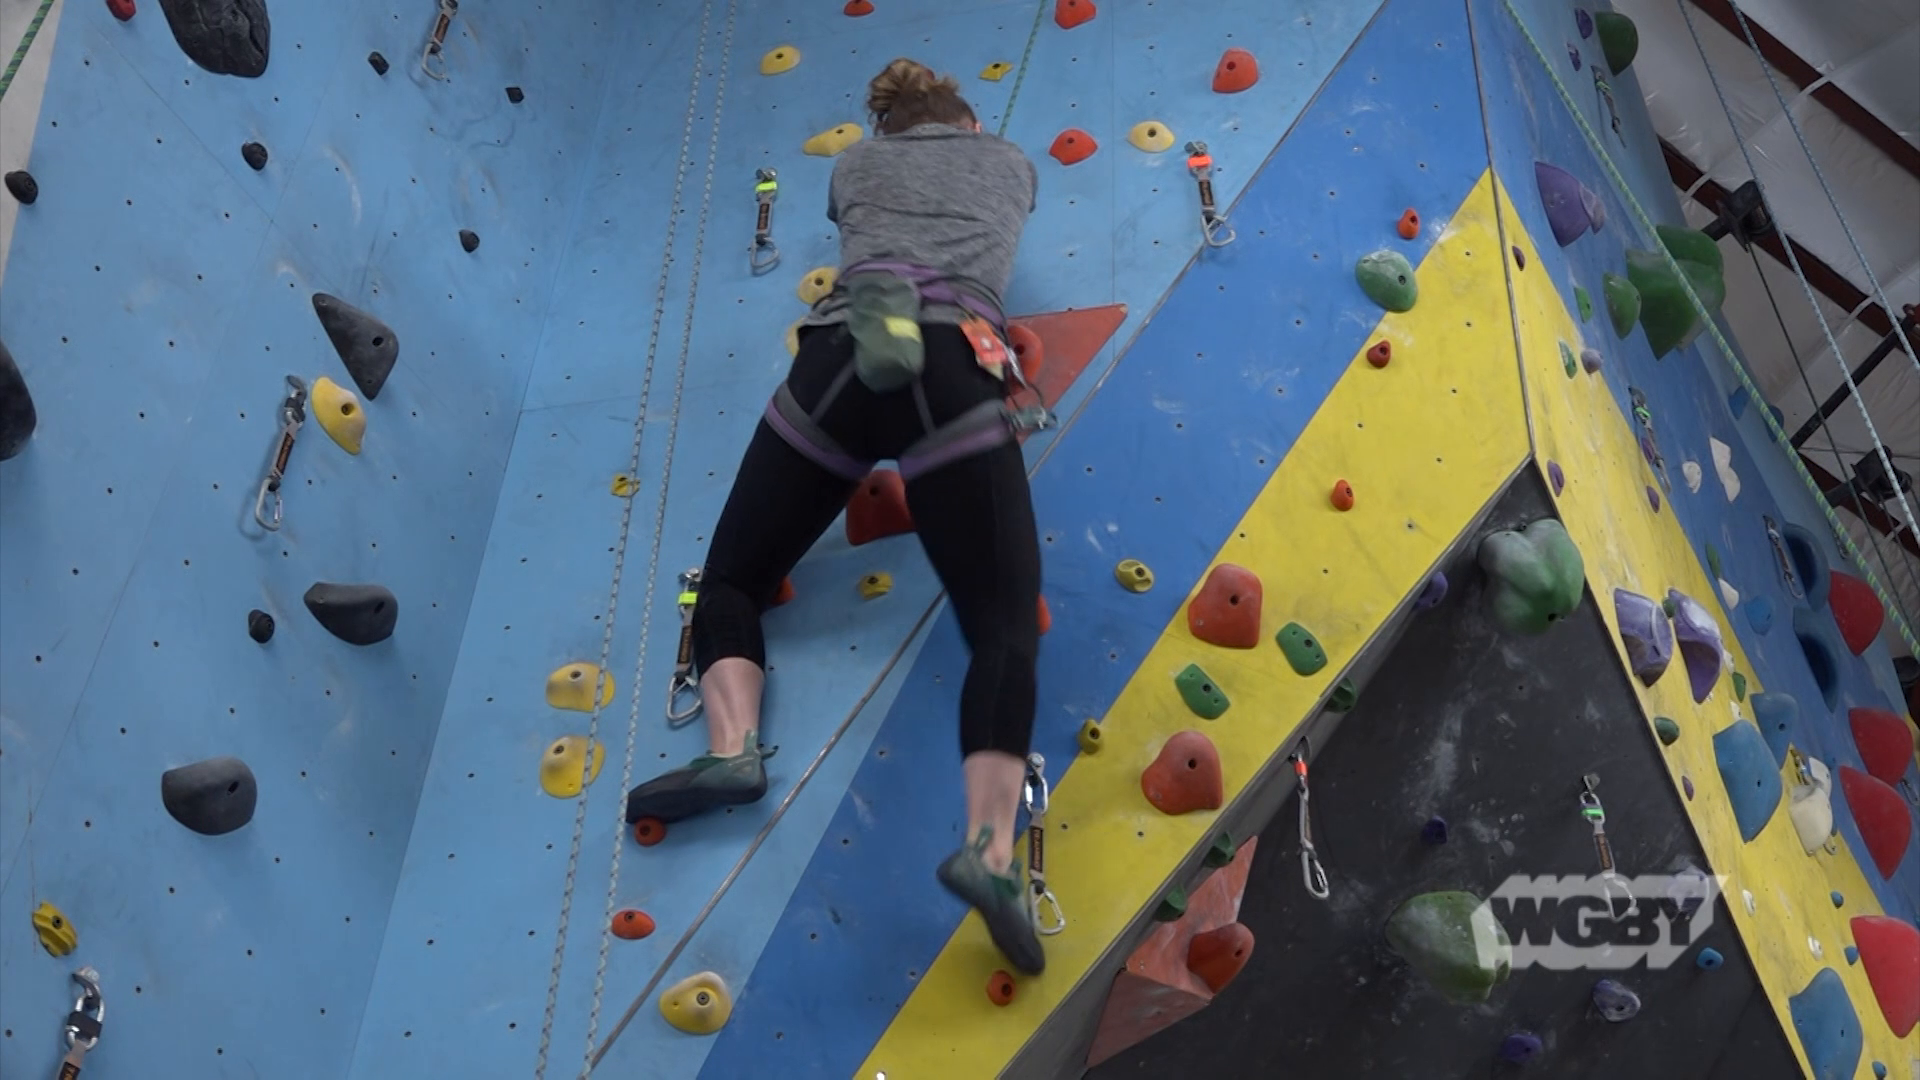 Grab a carabiner and head to Central Rock Gym in Hadley, MA, a local rock-climbing gym founded by brothers Ed & Joe Hardy.